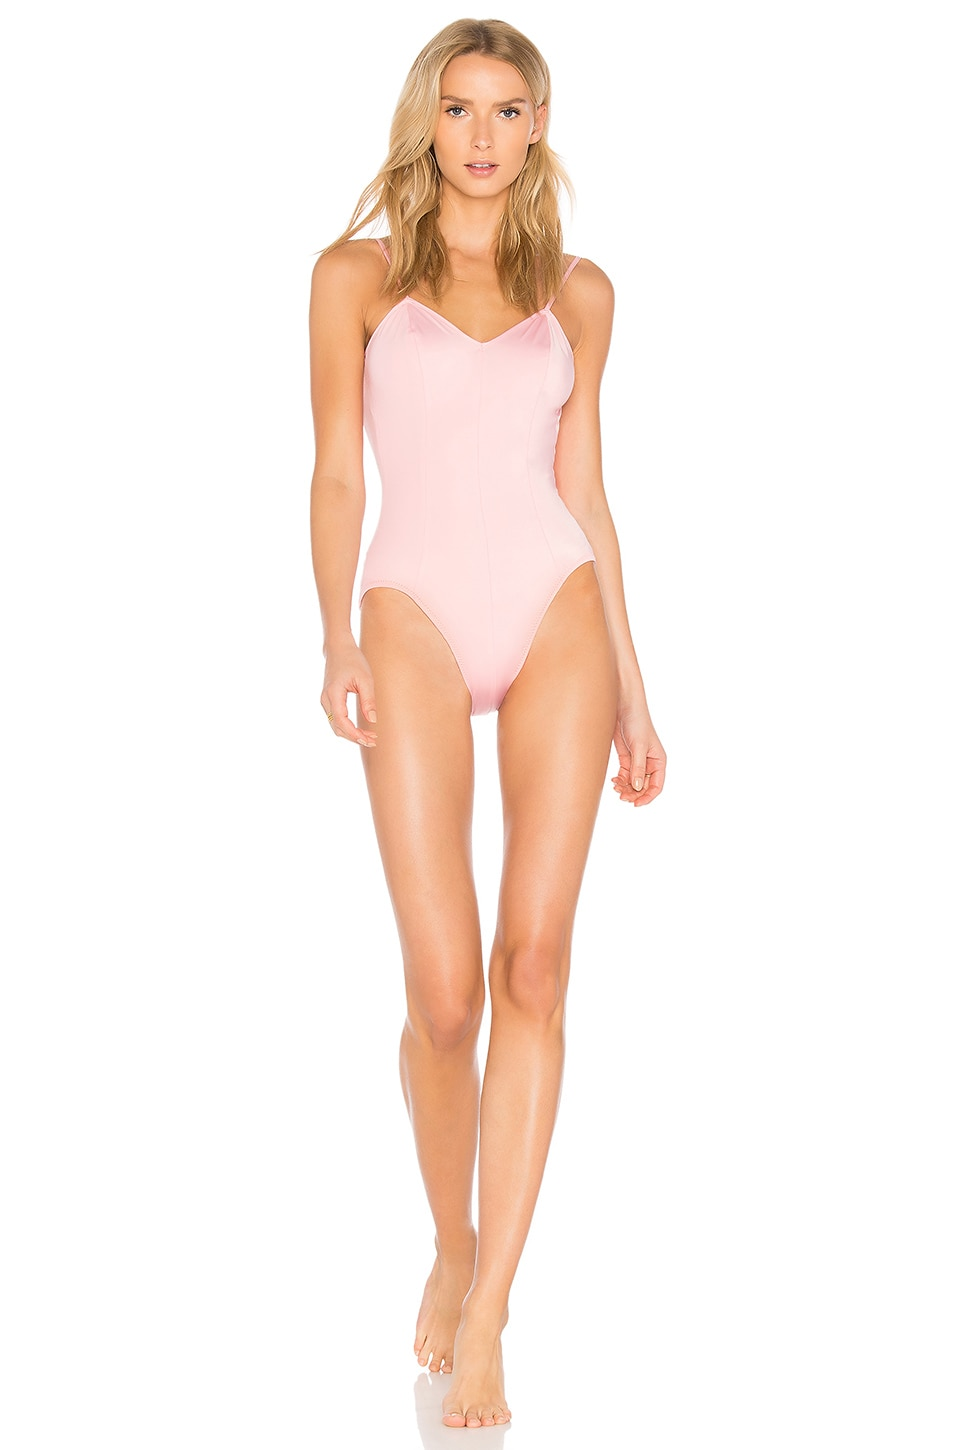 Norma Kamali Wonder Woman One Piece in Pink